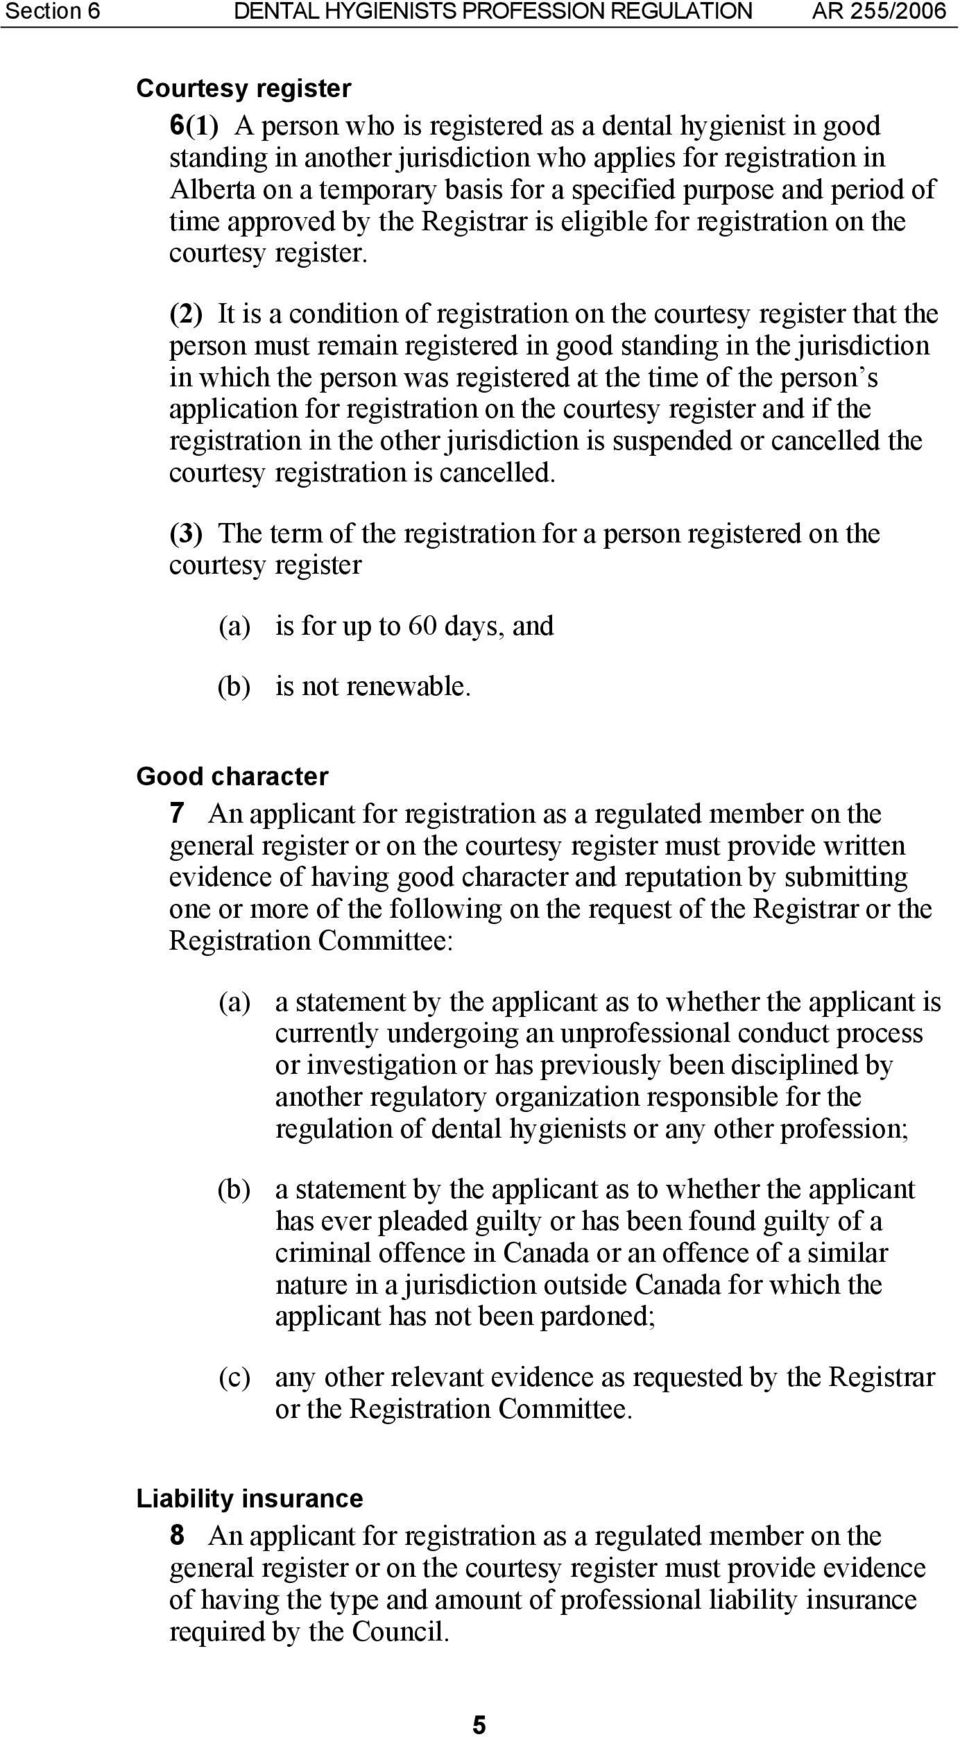 (2) It is a condition of registration on the courtesy register that the person must remain registered in good standing in the jurisdiction in which the person was registered at the time of the person